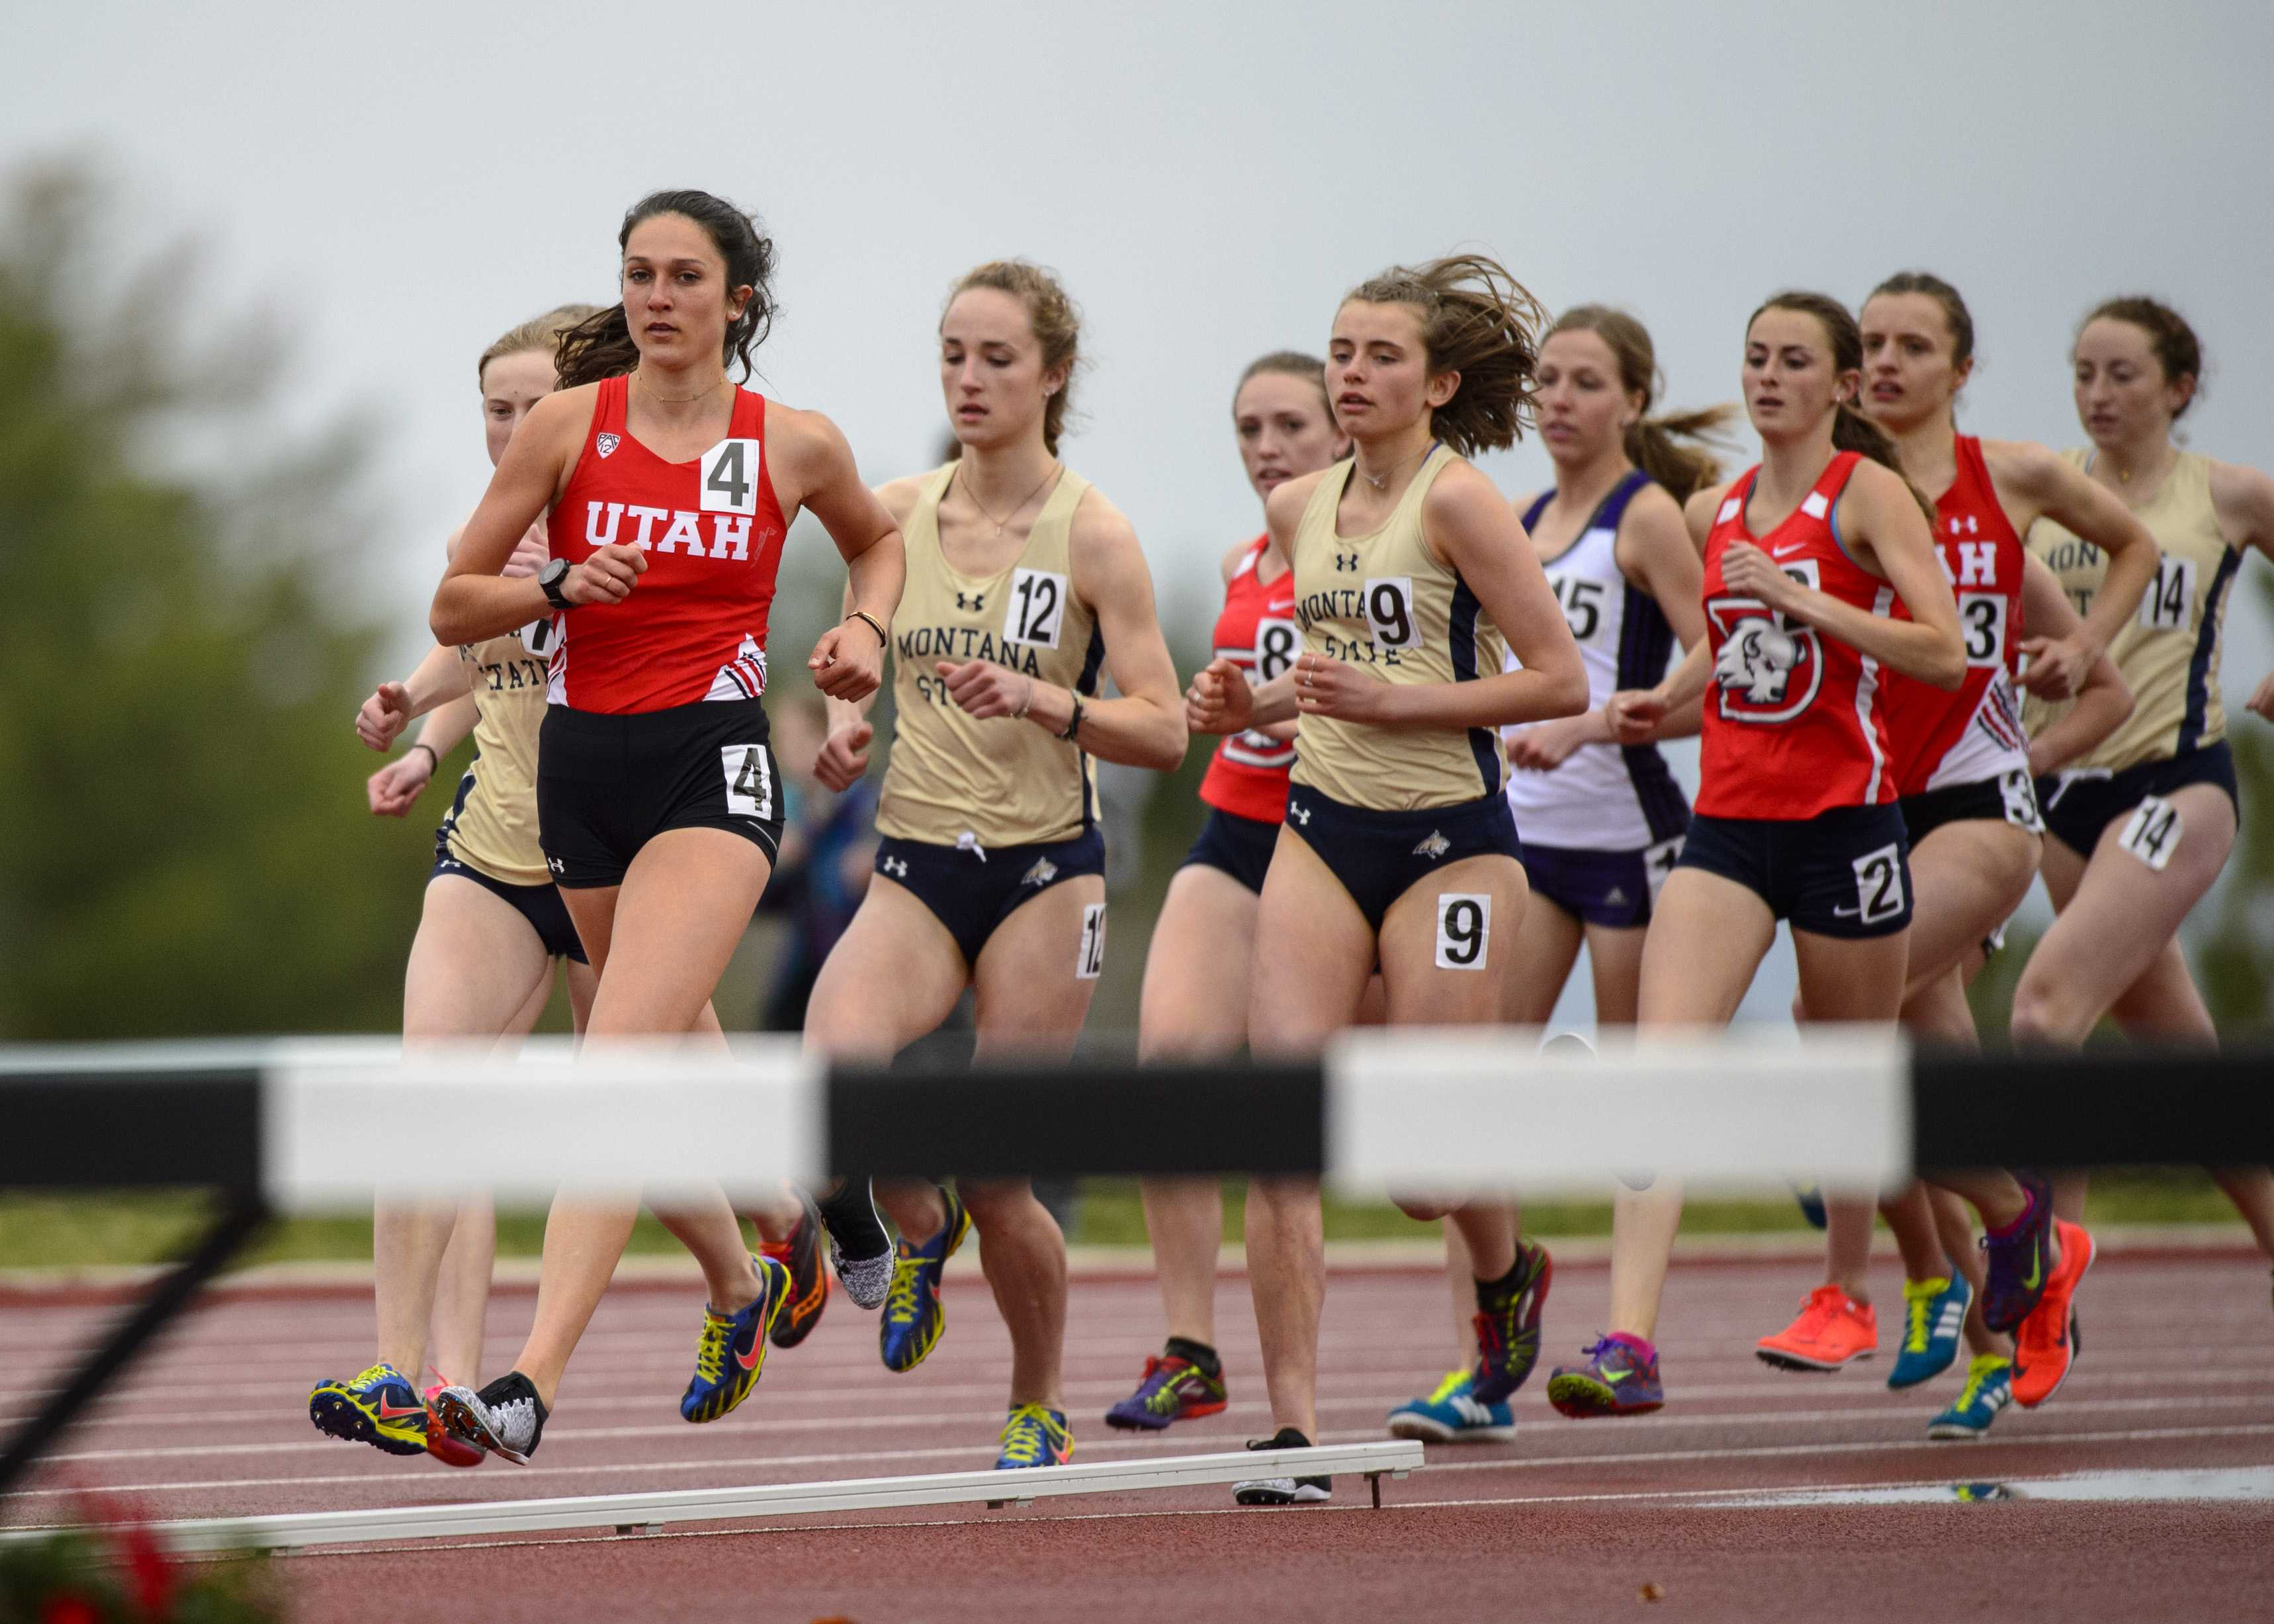 The University of Utah and Weber State host the Spring Classic at the McCarthy track & field in Salt Lake City, Utah on Friday, April 6, 2018.  (Photo by Kiffer Creveling | The Daily Utah Chronicle)